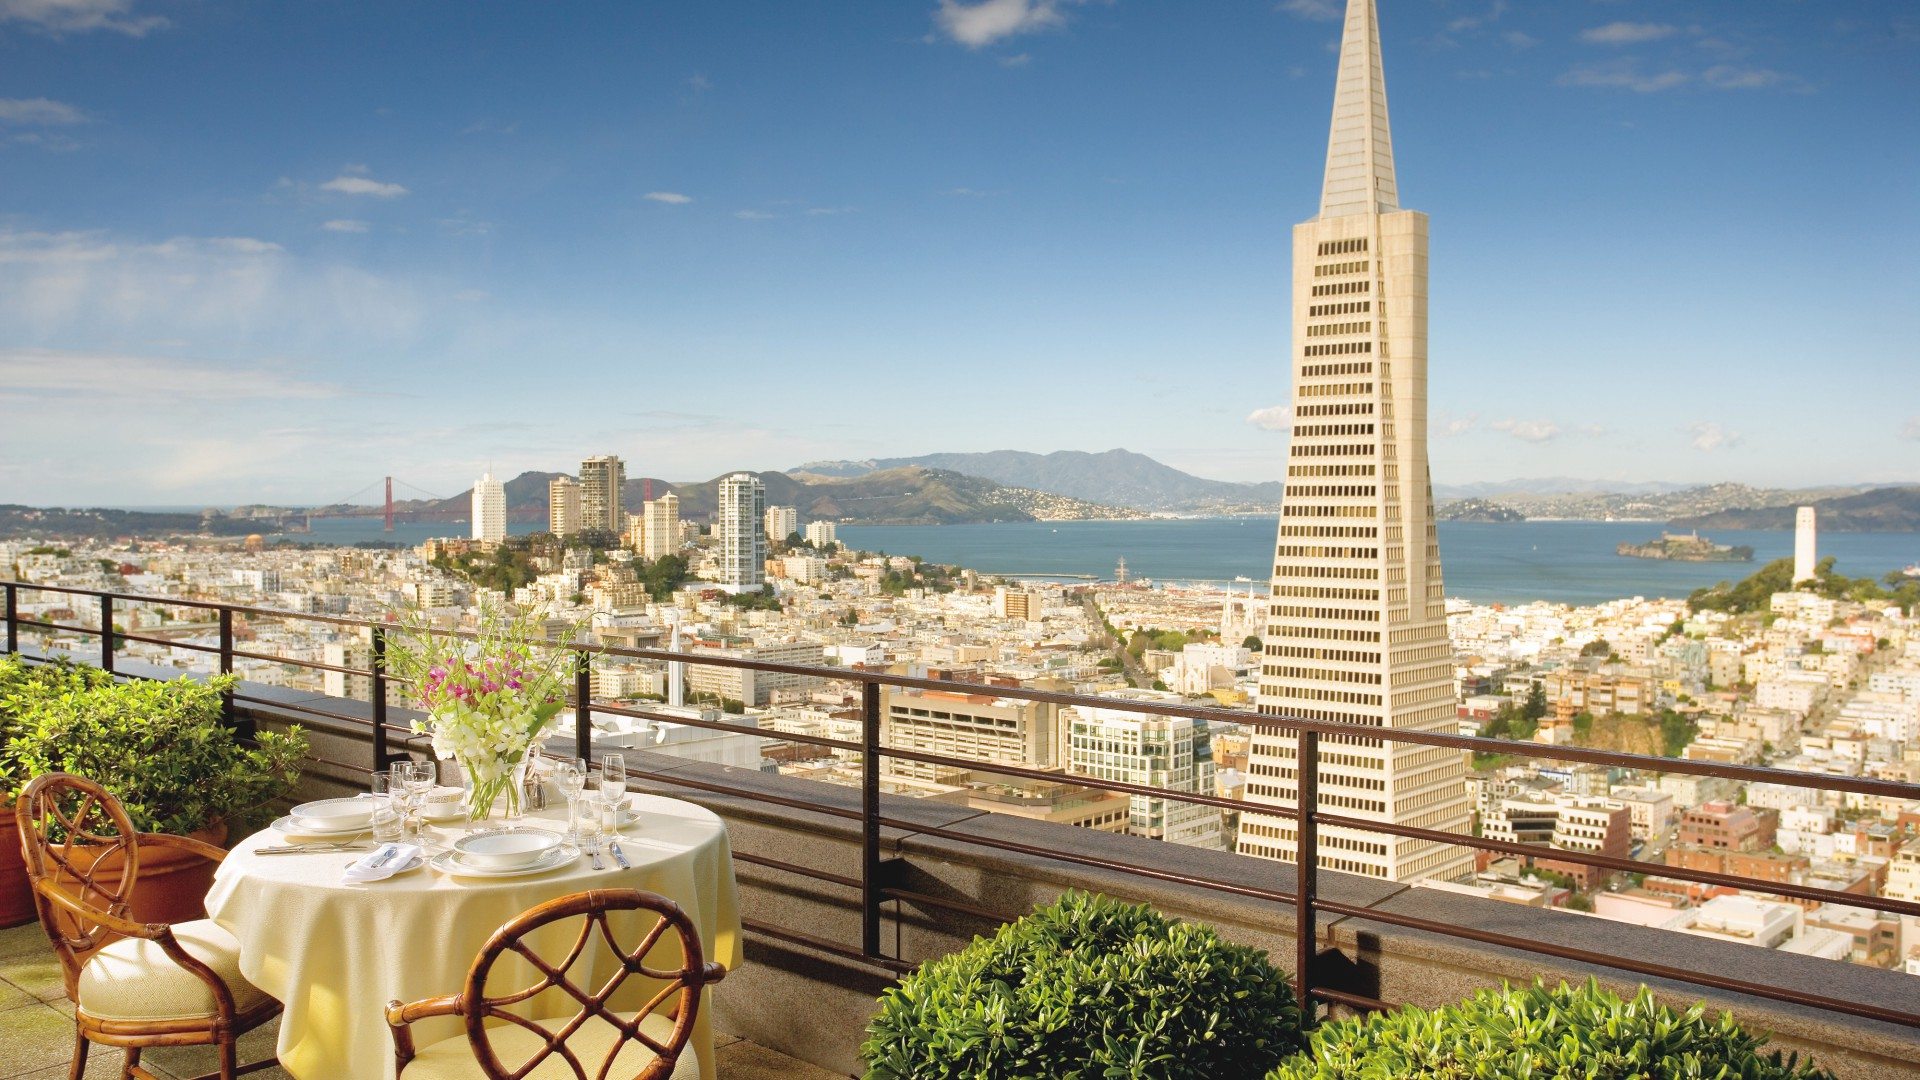 Mandarin Oriental Hotel, San Francisco, Best Hotels of 2017, tourism, travel, resort, vacation (horizontal)